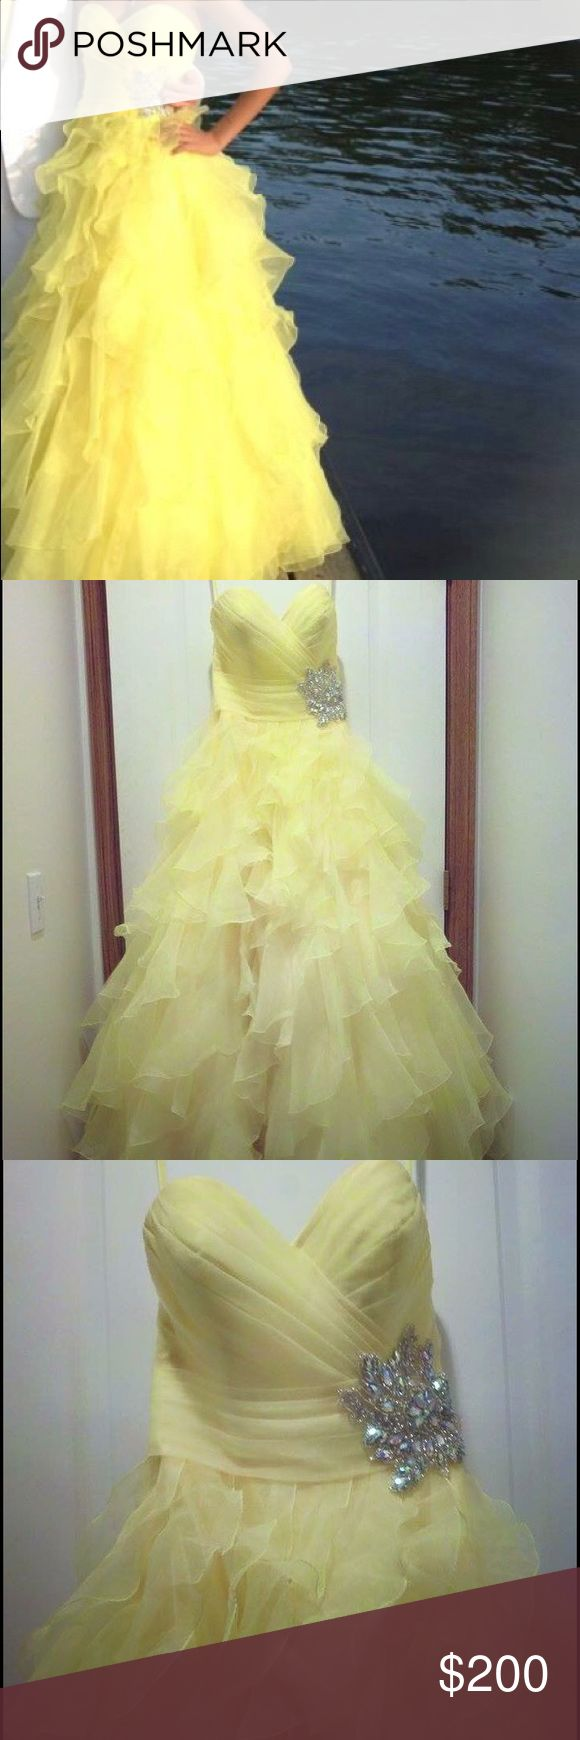 """Yellow Prom Dress Originally a size 6 but taken in to fit like a 4 and can be let back out! Worn once and in great condition! Strapless dress, fitted at the top with a flowy bottom. Picture of the dress on the model and on myself are shown! I am 5'5""""! Night Moves Dresses Prom"""